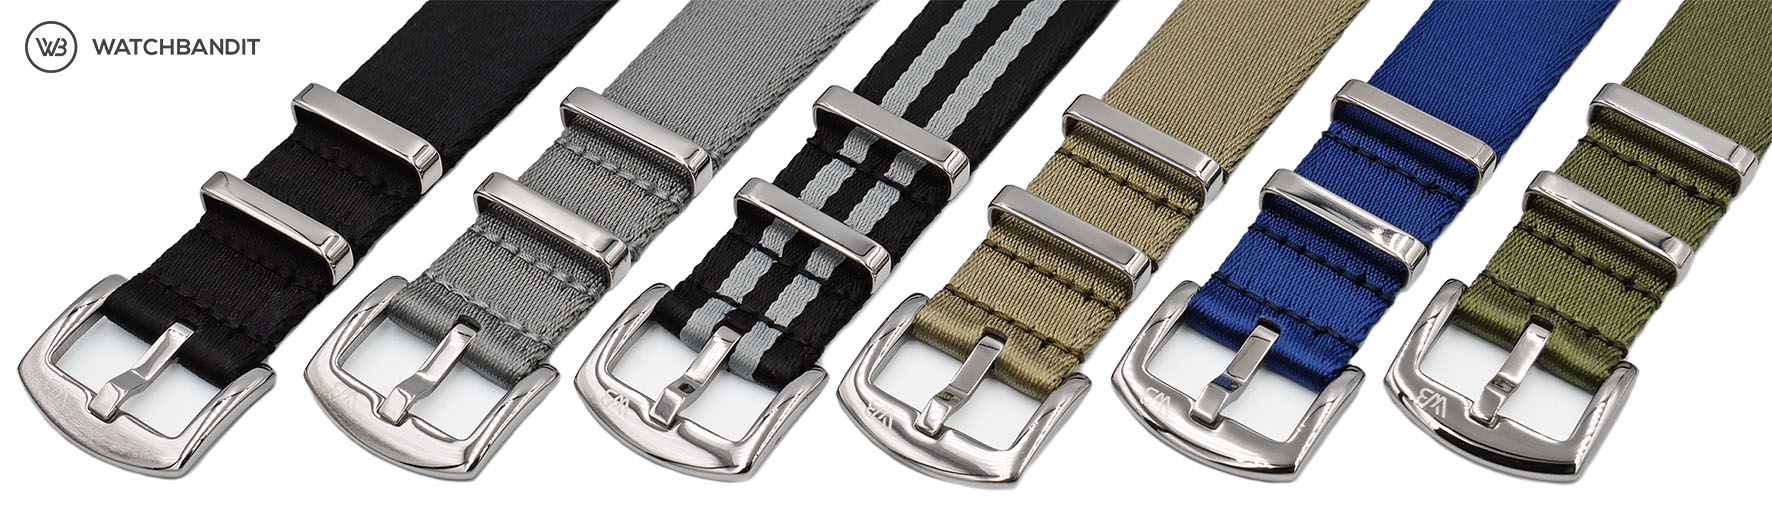 Premium 1.2 mm seat belt polished NATO Strap collection by WatchBandit Banner